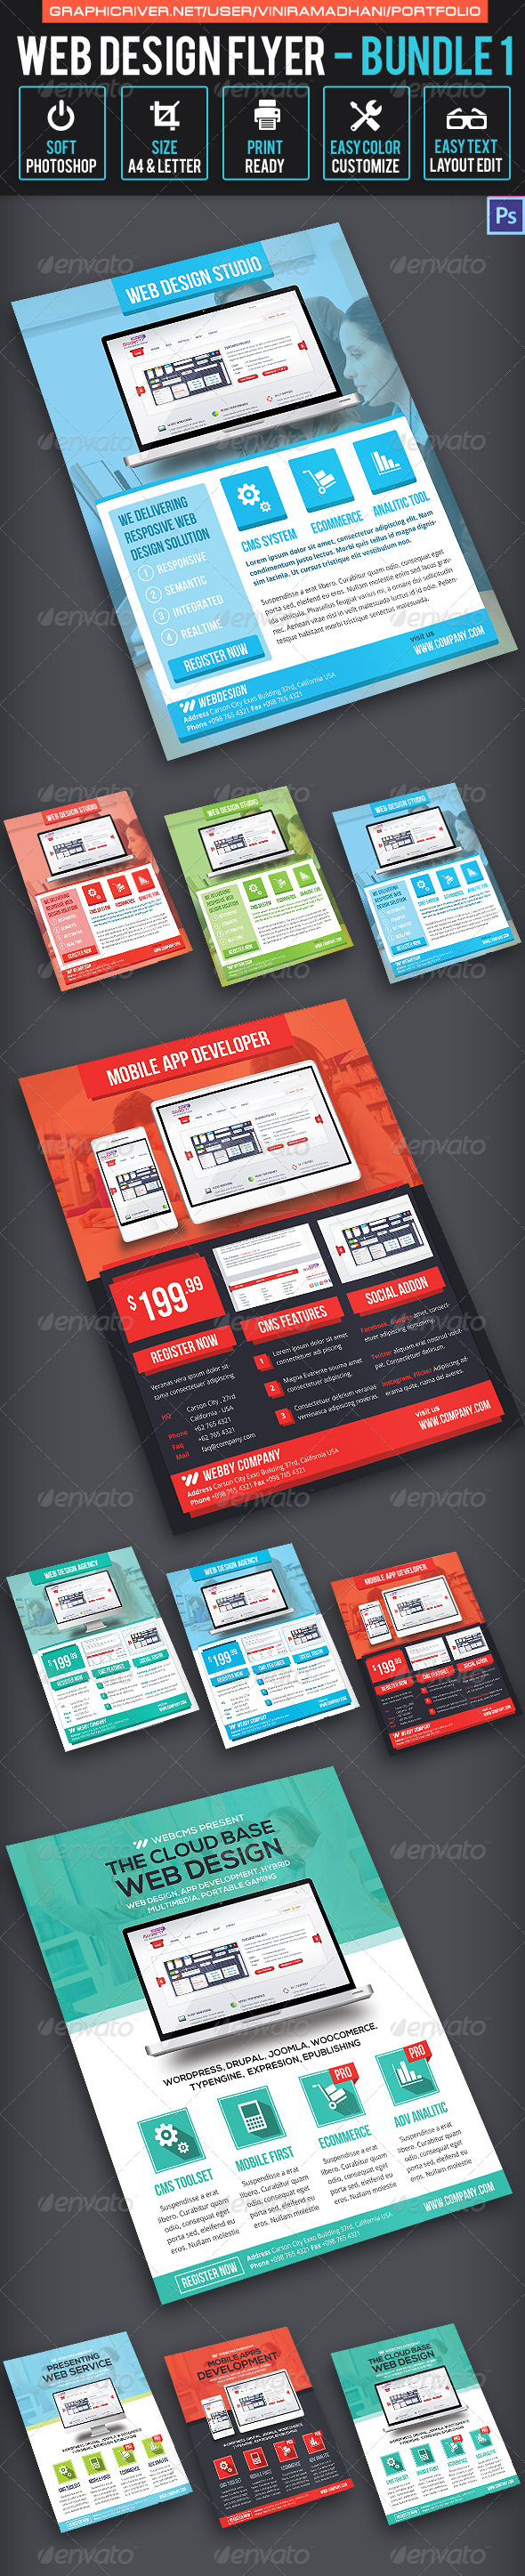 Web Design Flyer Bundle 1 - Corporate Flyers